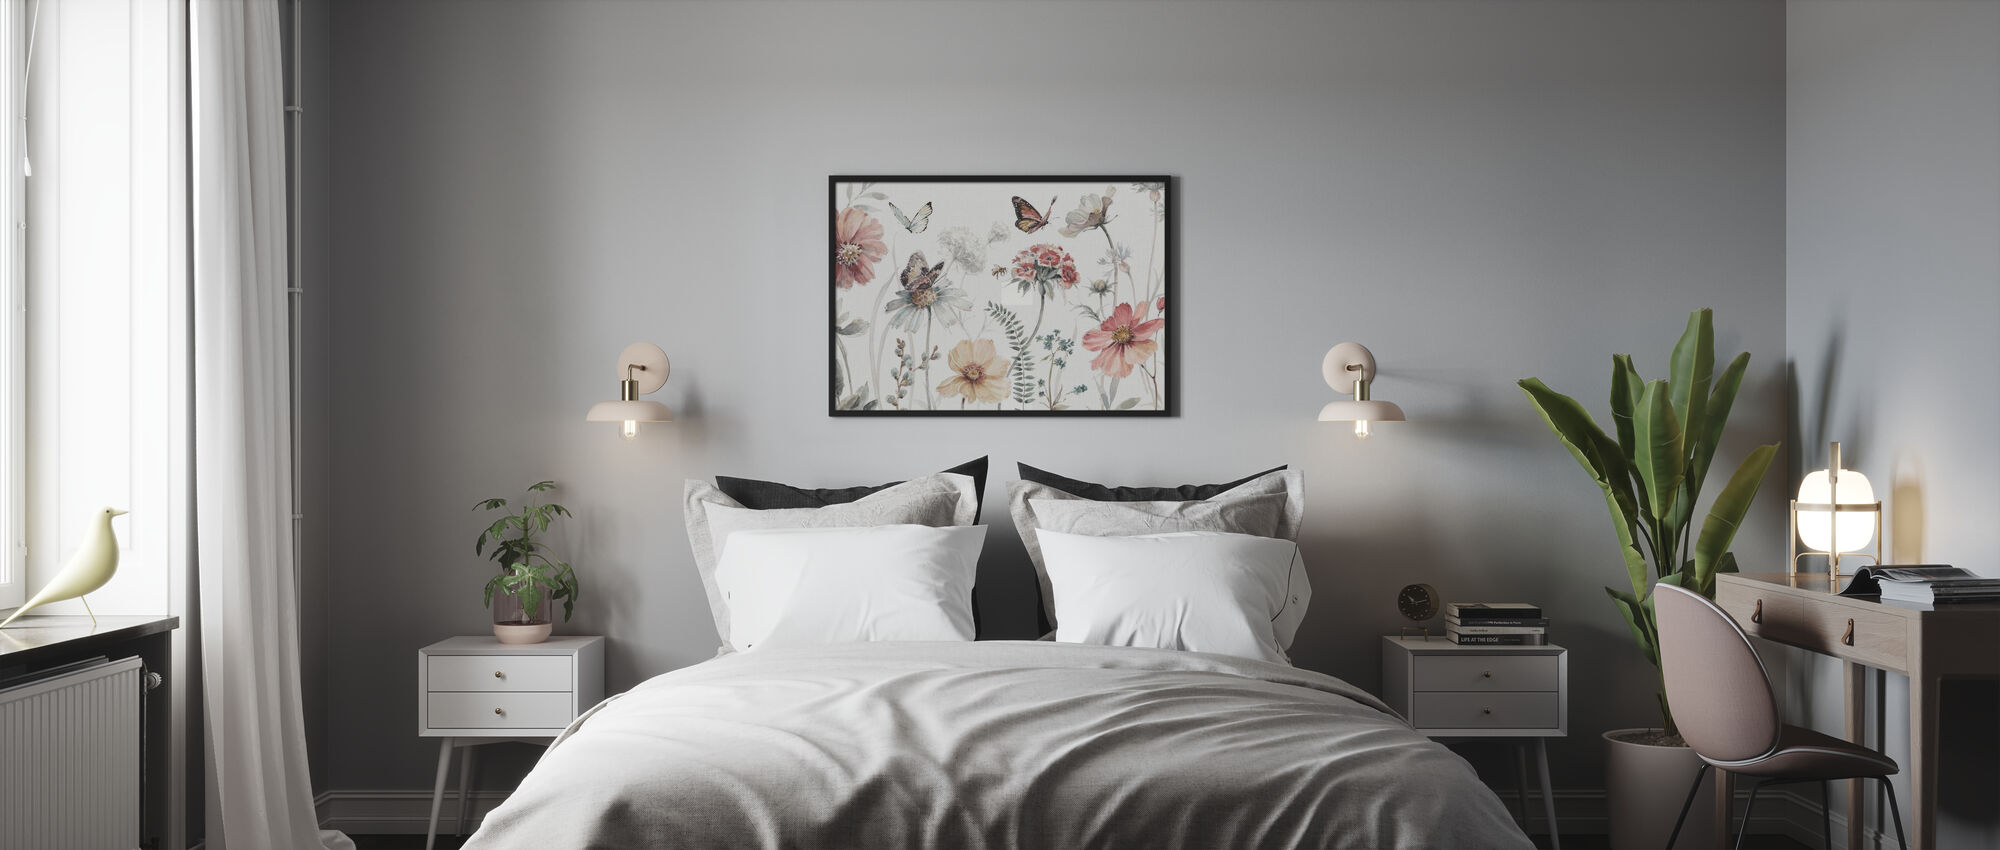 A Country Weekend - Poster - Bedroom